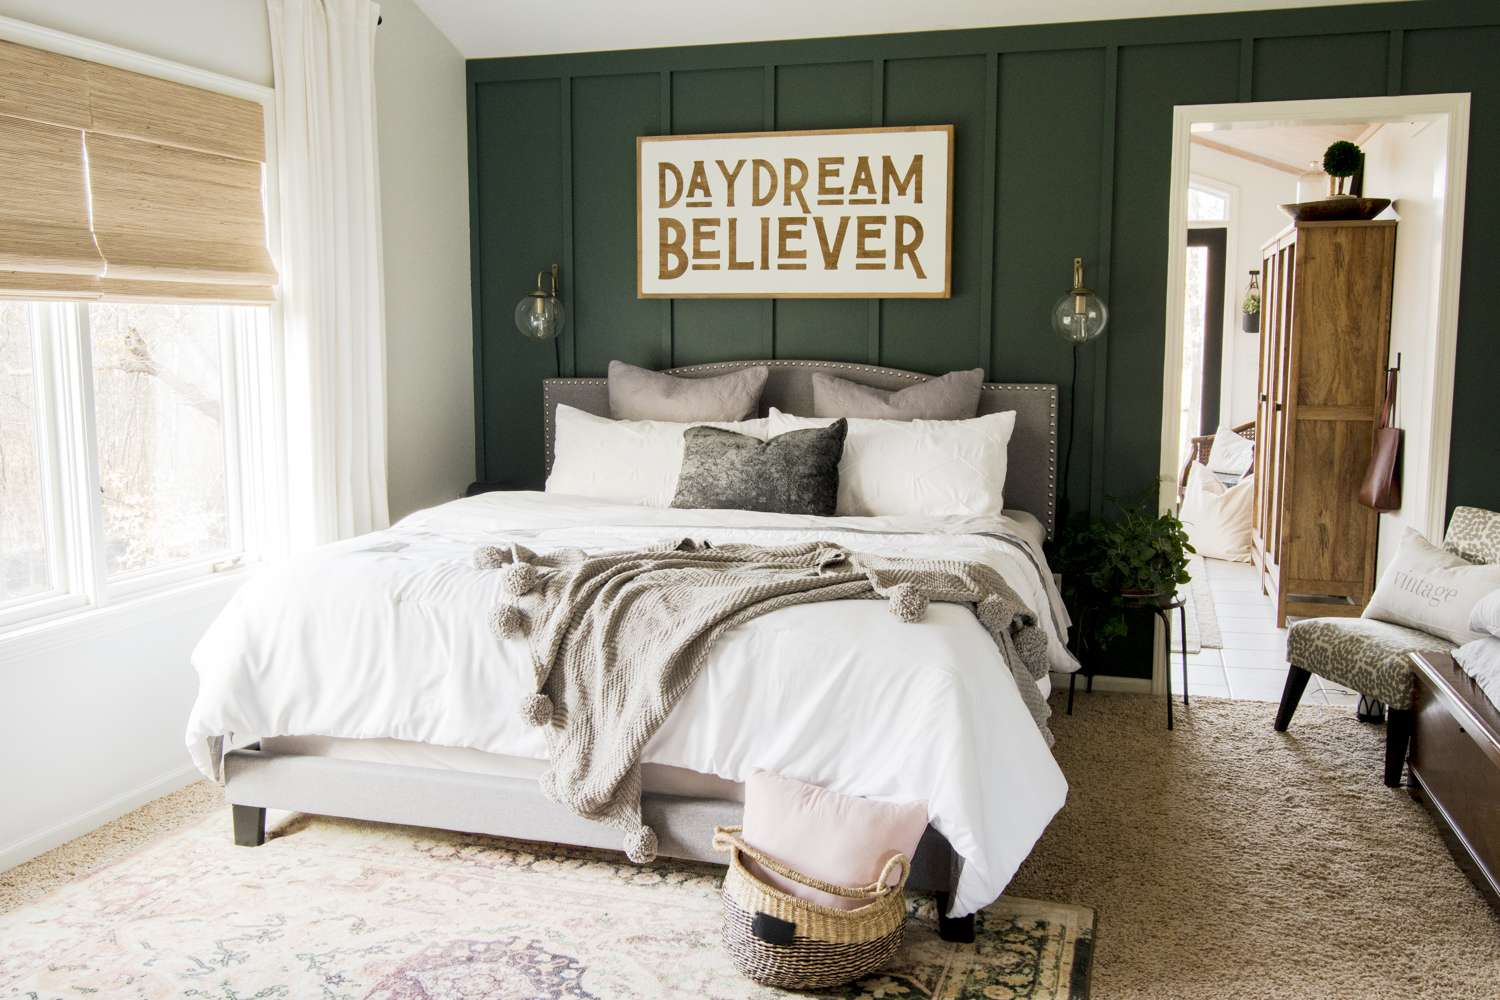 Master bedroom design for a modern farmhouse home.